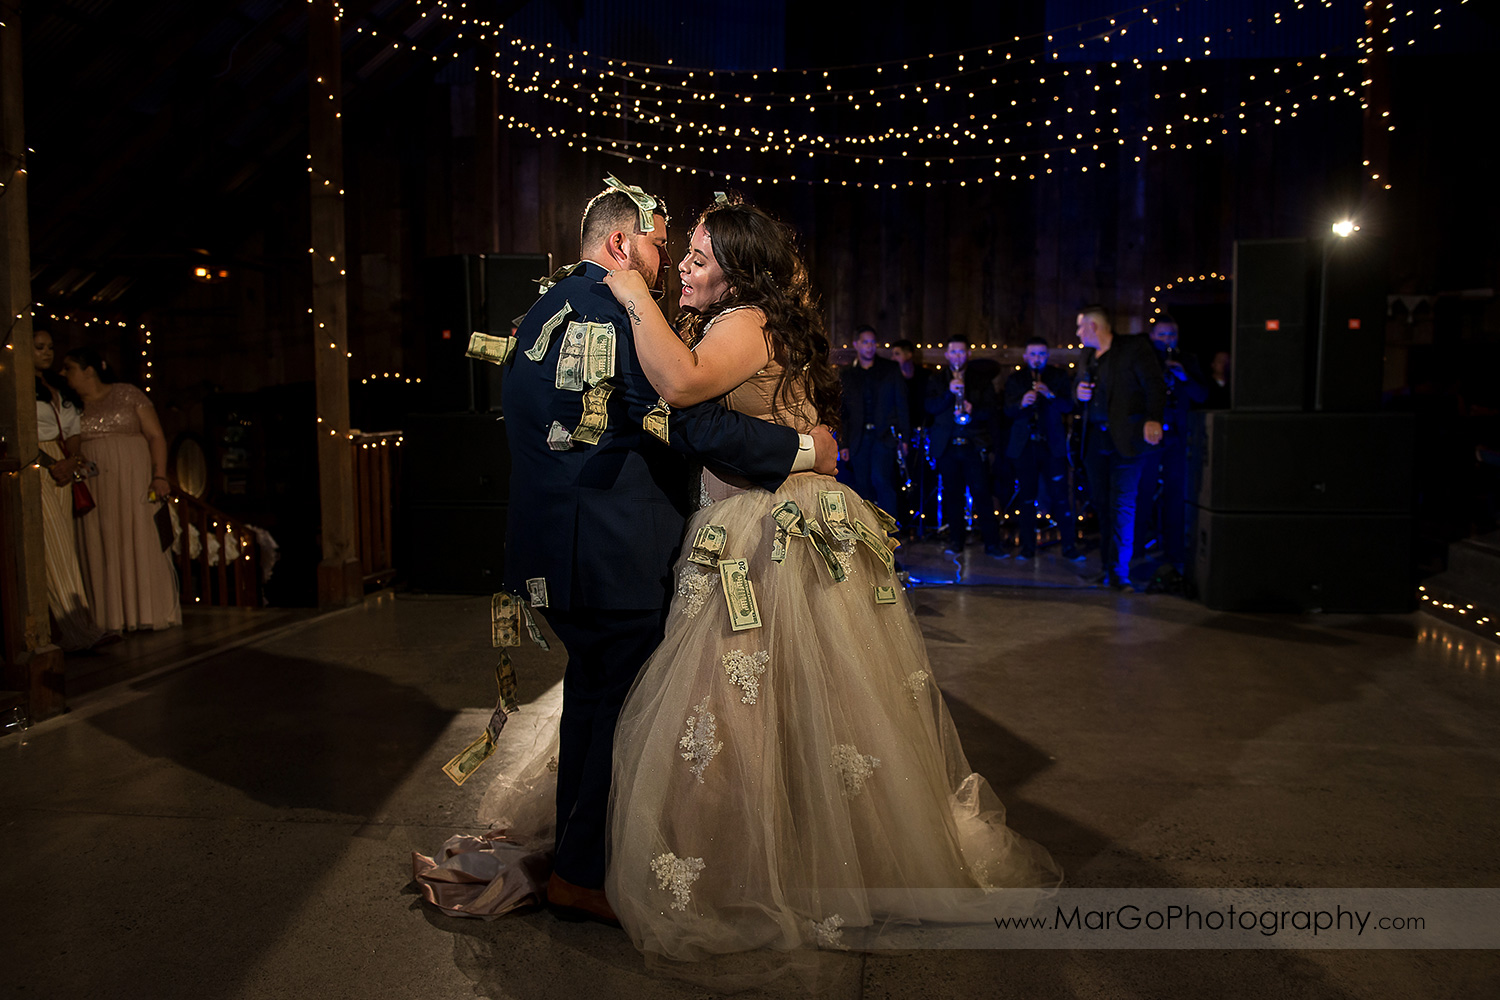 money dance of bride and groom during wedding reception at Taber Ranch Vineyards